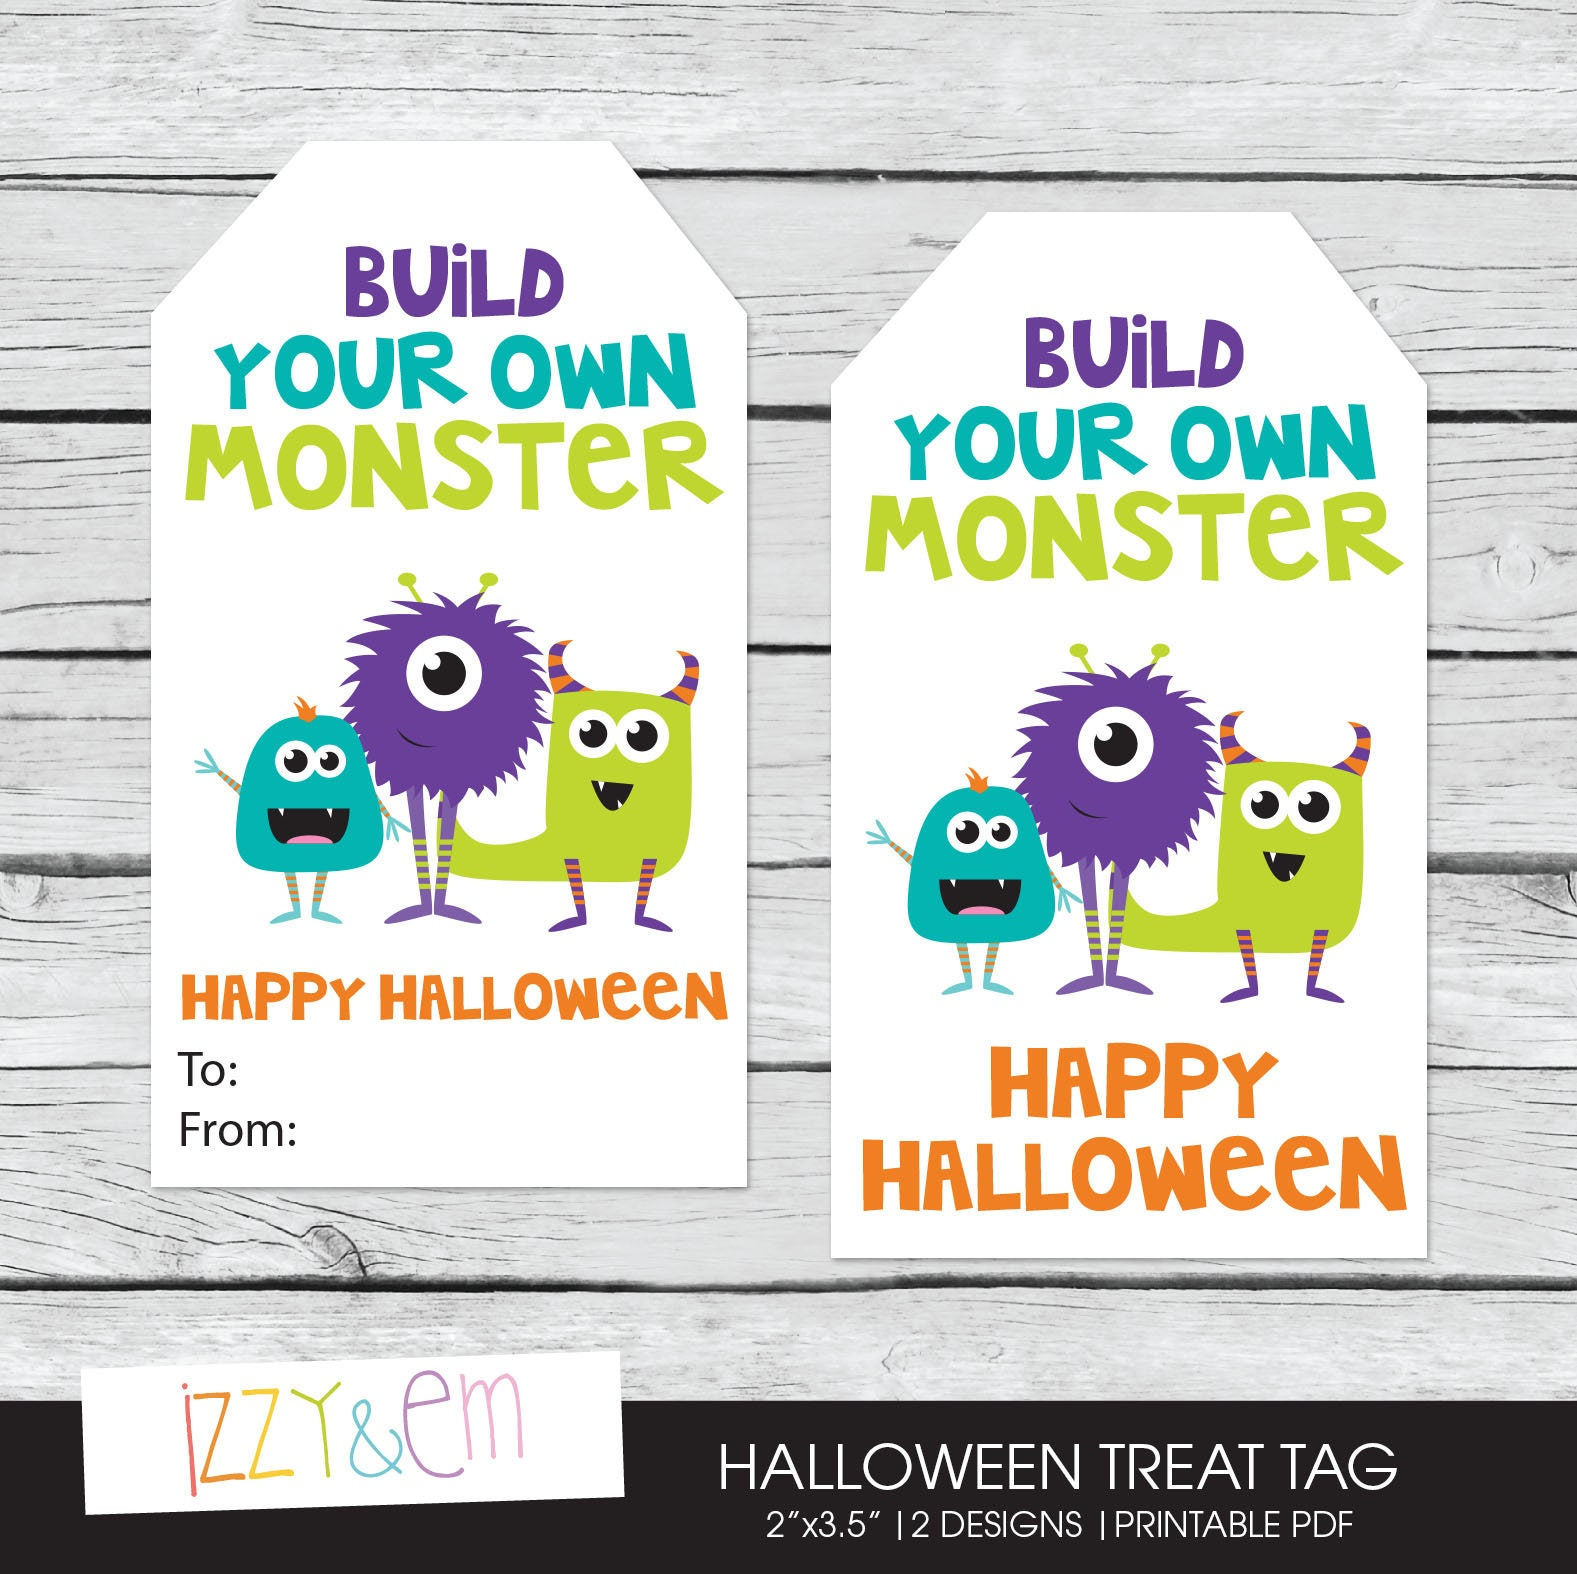 Halloween Favor Tag Halloween Gift Tag Build your own